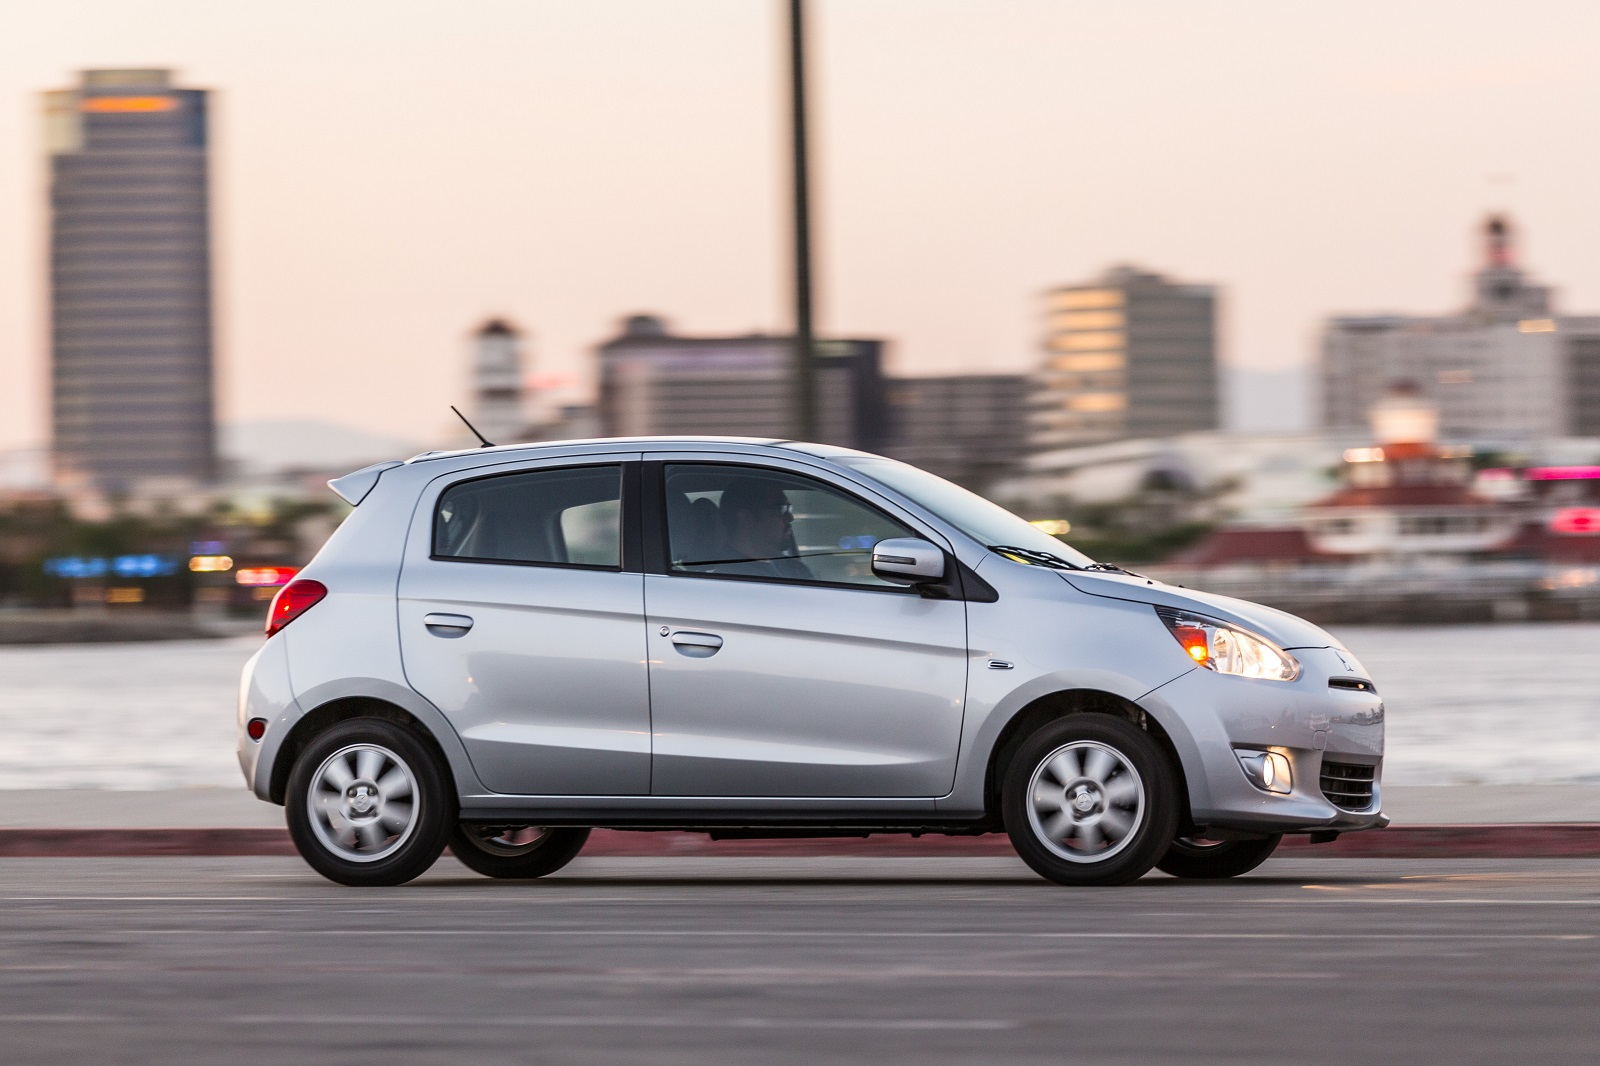 2015 Mitsubishi Mirage Minicar Scores Well On Federal